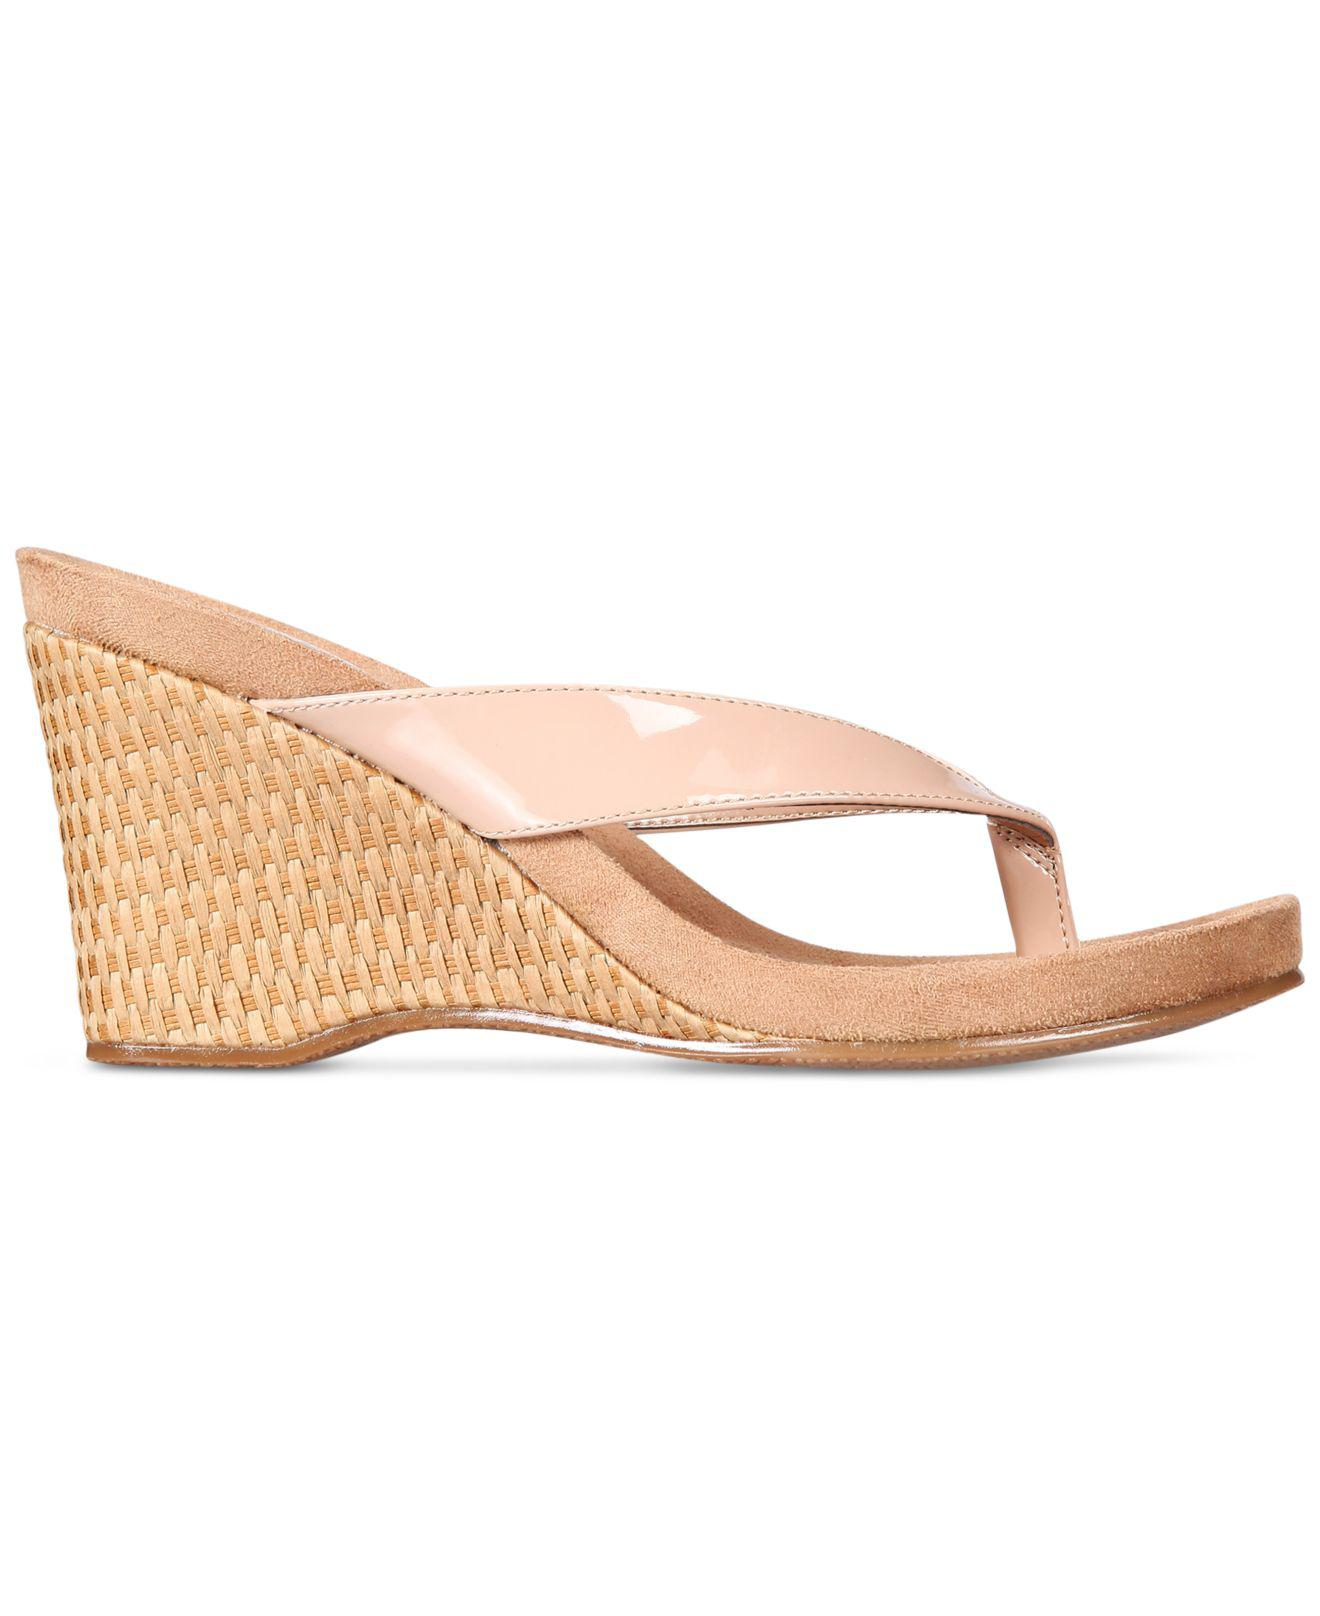 e6c9337f10b9 Lyst - Style   Co. Chicklet Wedge Sandals in Natural